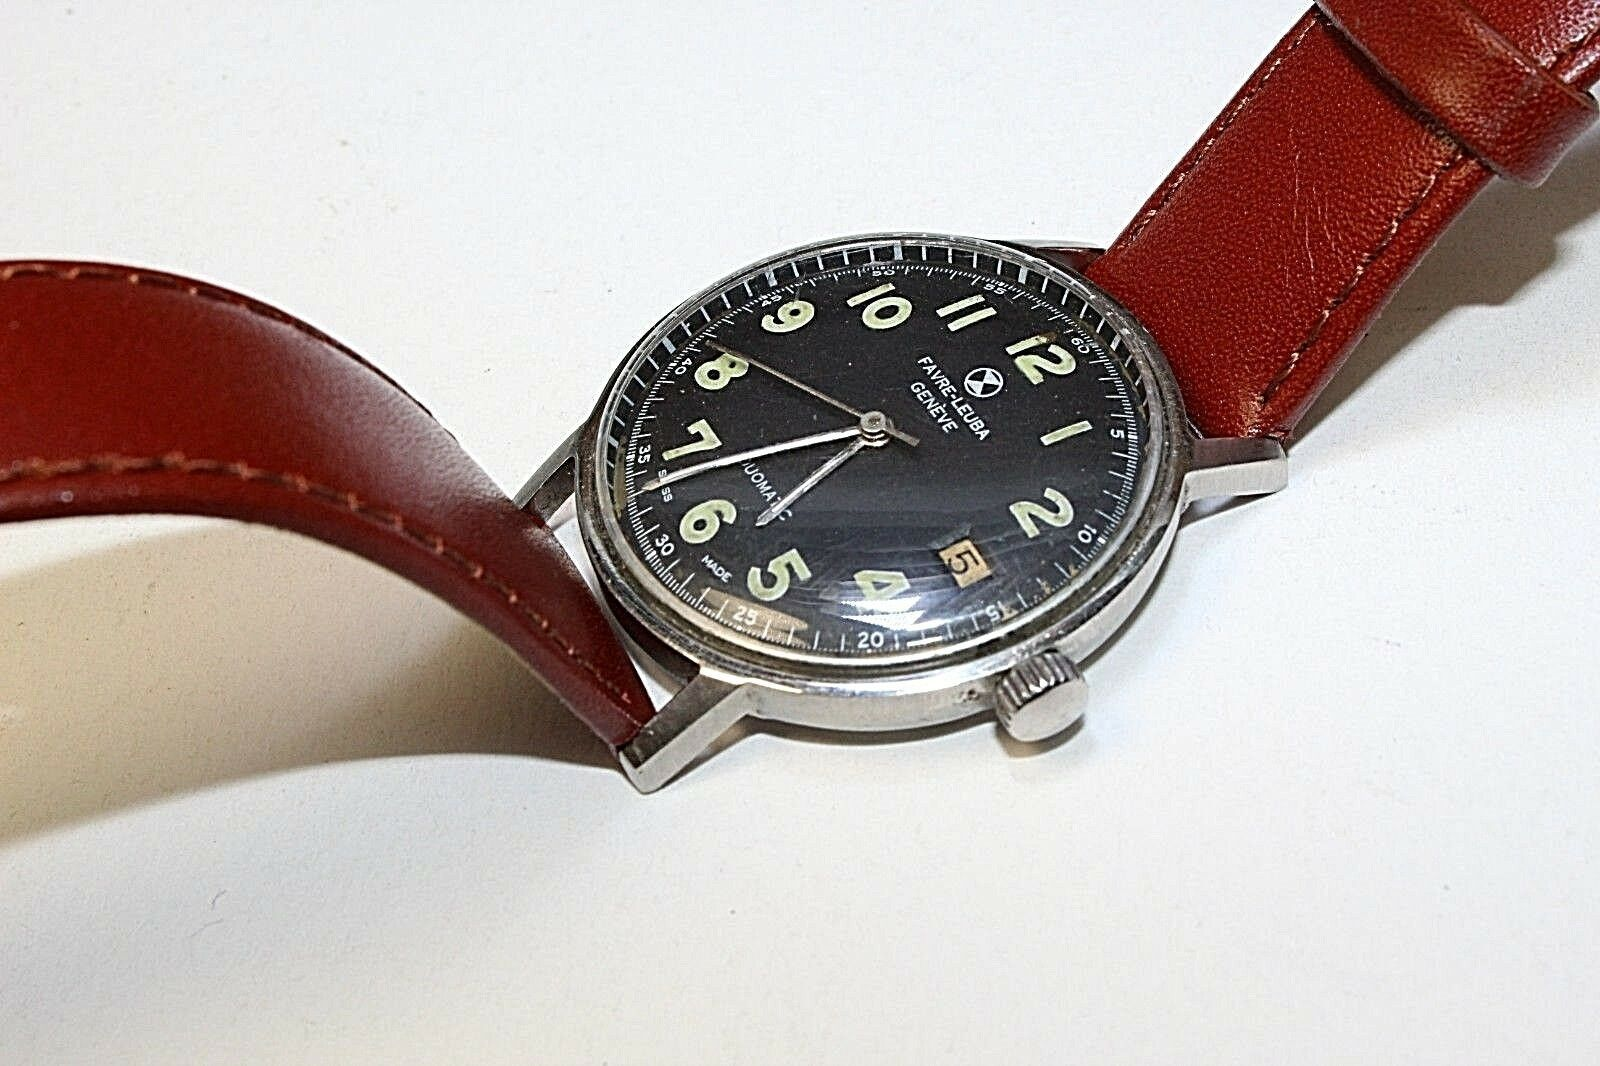 Favre leuba Swiss automatic men watch Duomatic Vintage in running condition